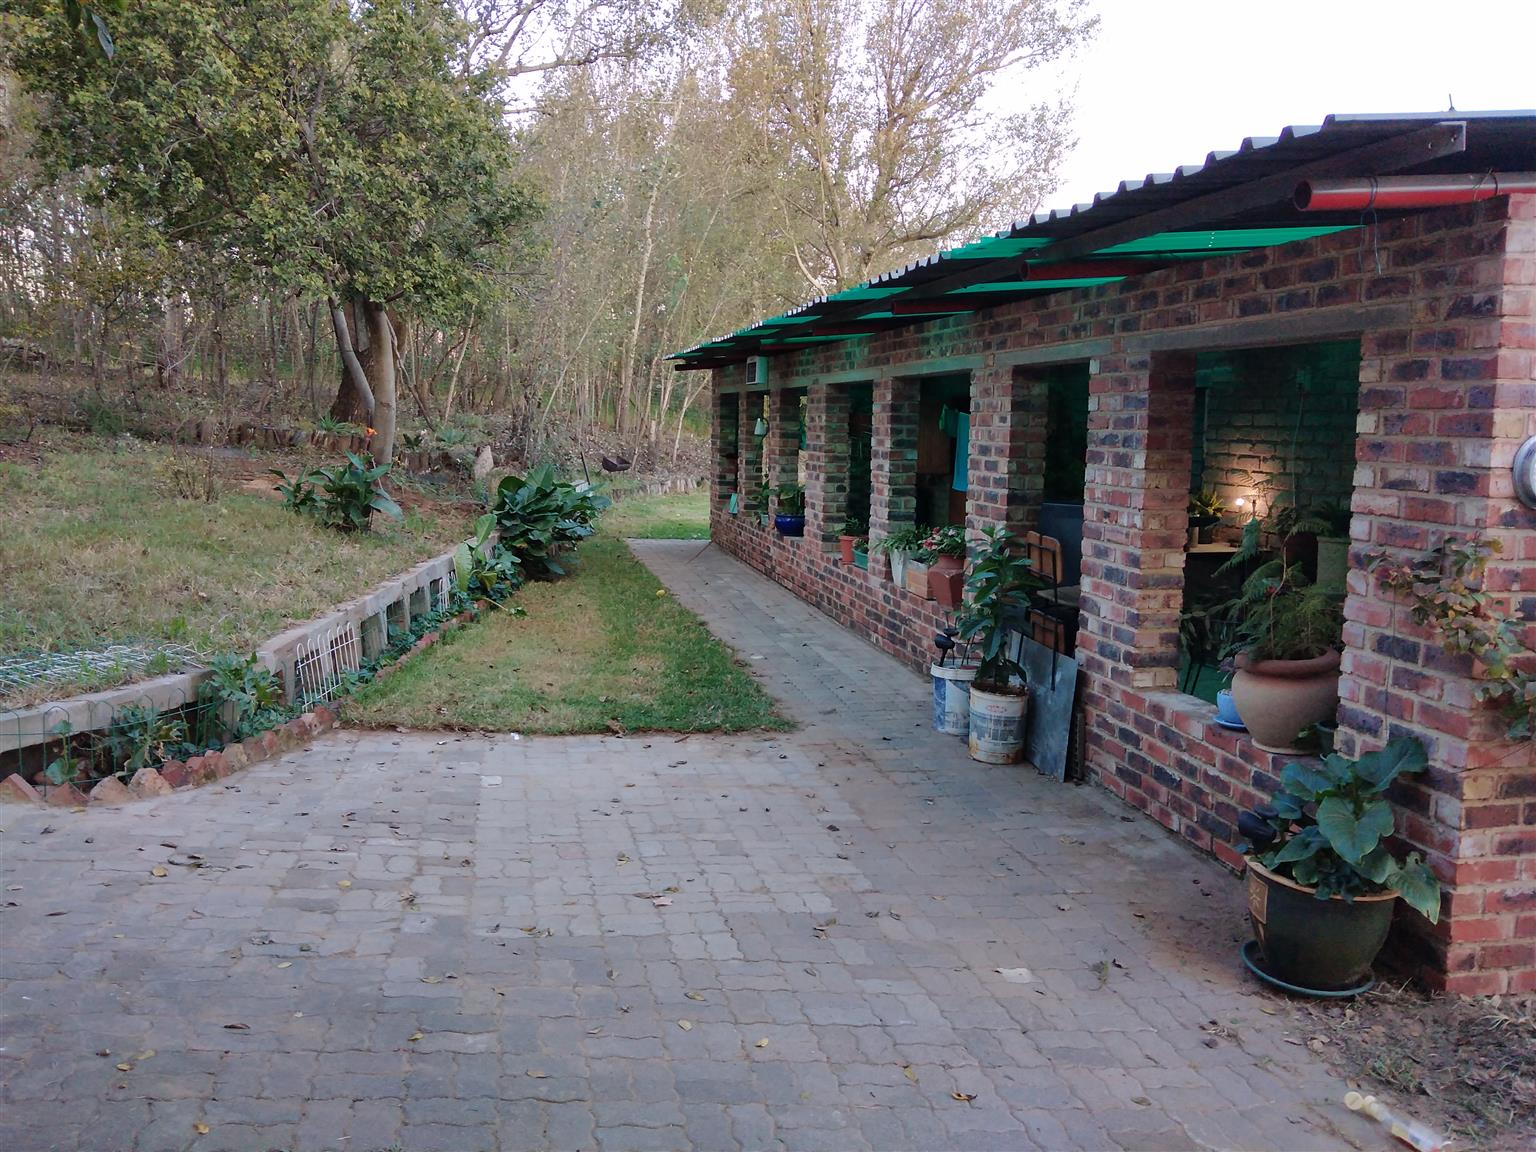 RIVER FRONT PROPERTY FOR SALE